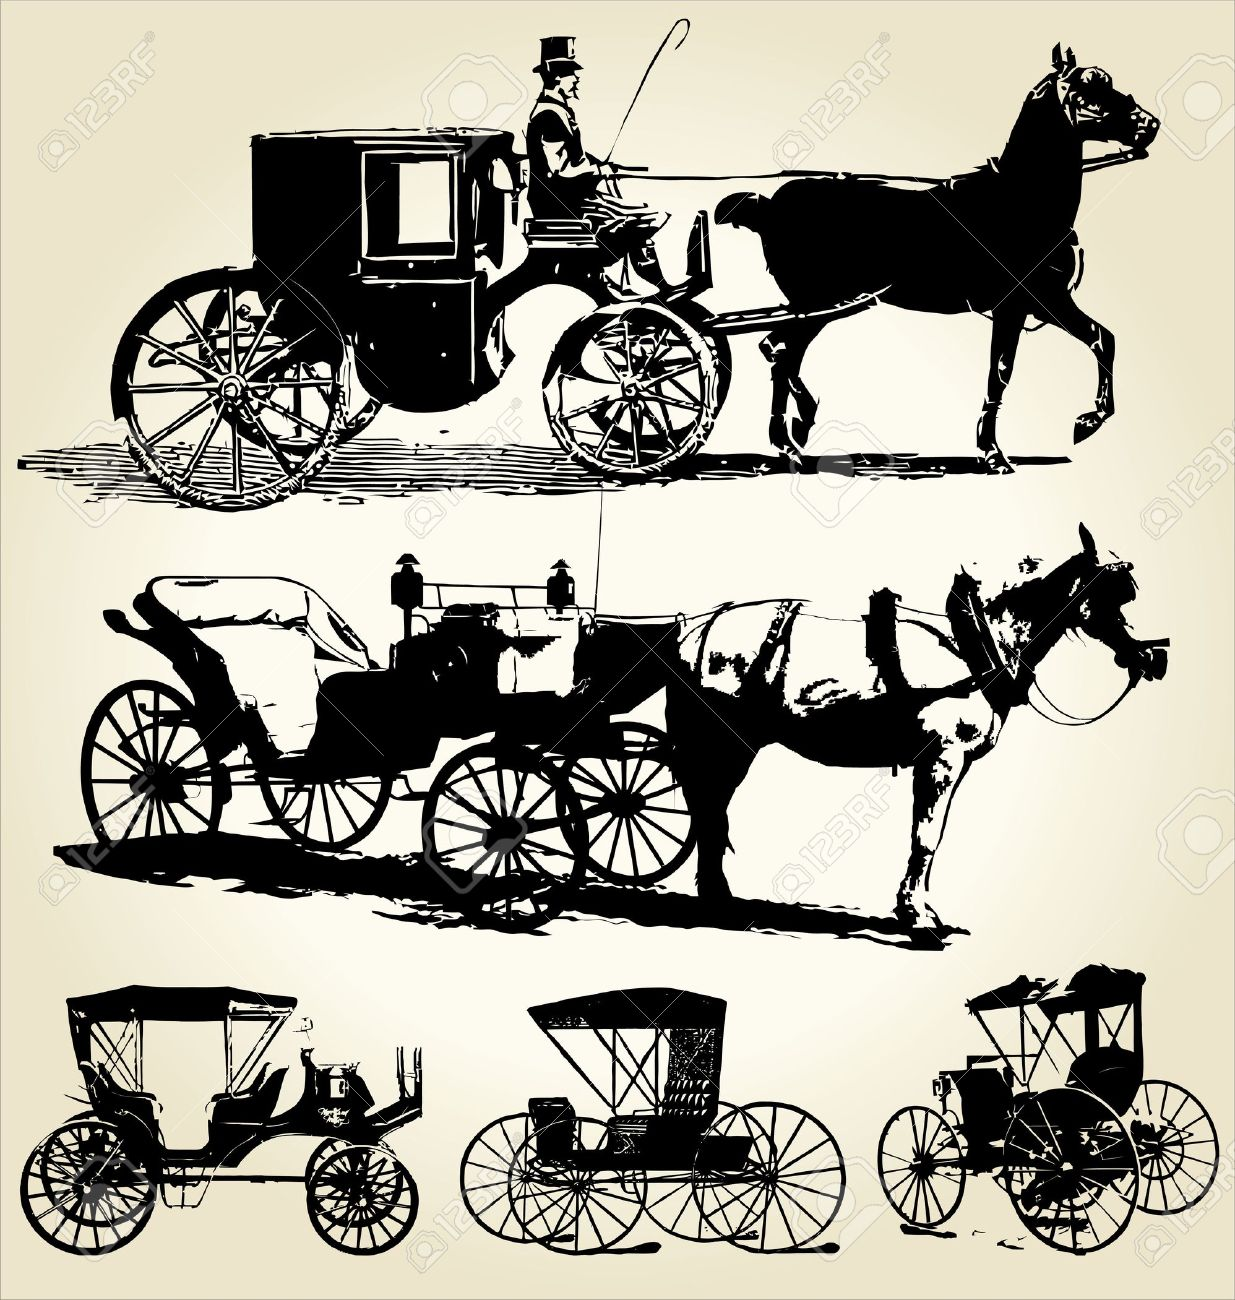 1235x1300 Horse Drawn Carriage Clipart Old Transportation